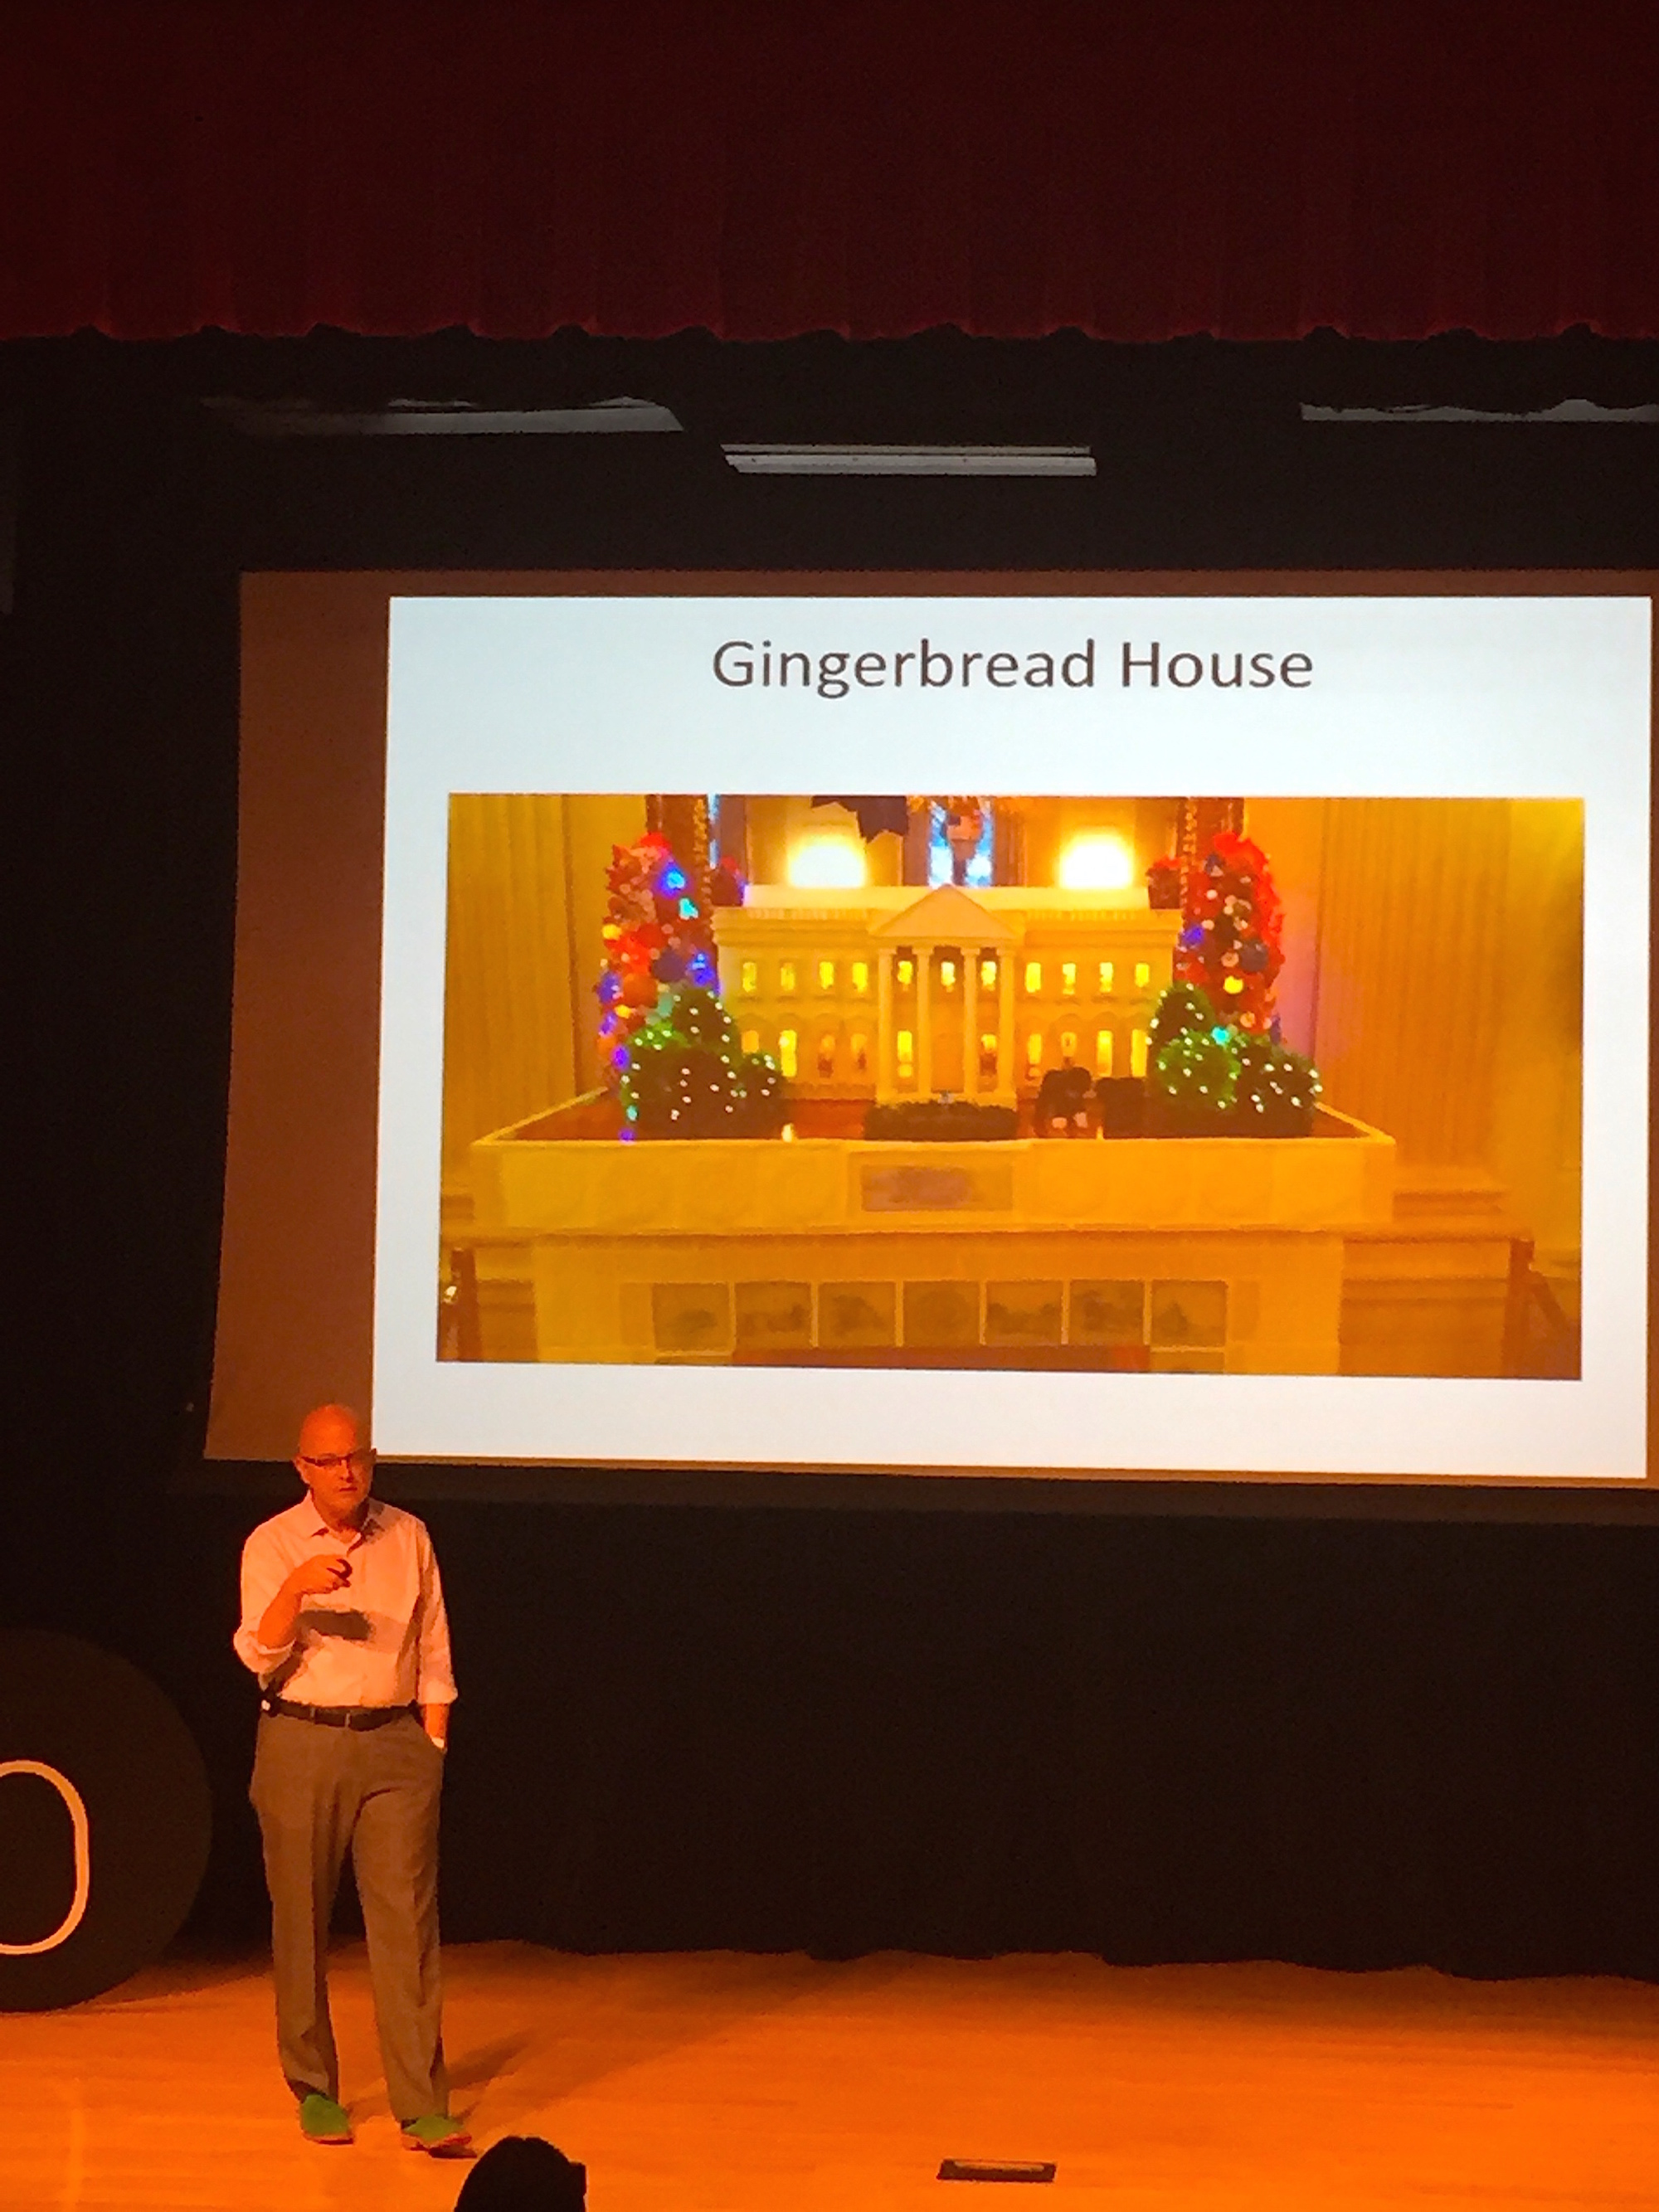 Former White House pastry chef Bill Yosses presents the ultimate gingerbread house, and how he took his career in the Capitol to educating kids in NYC.